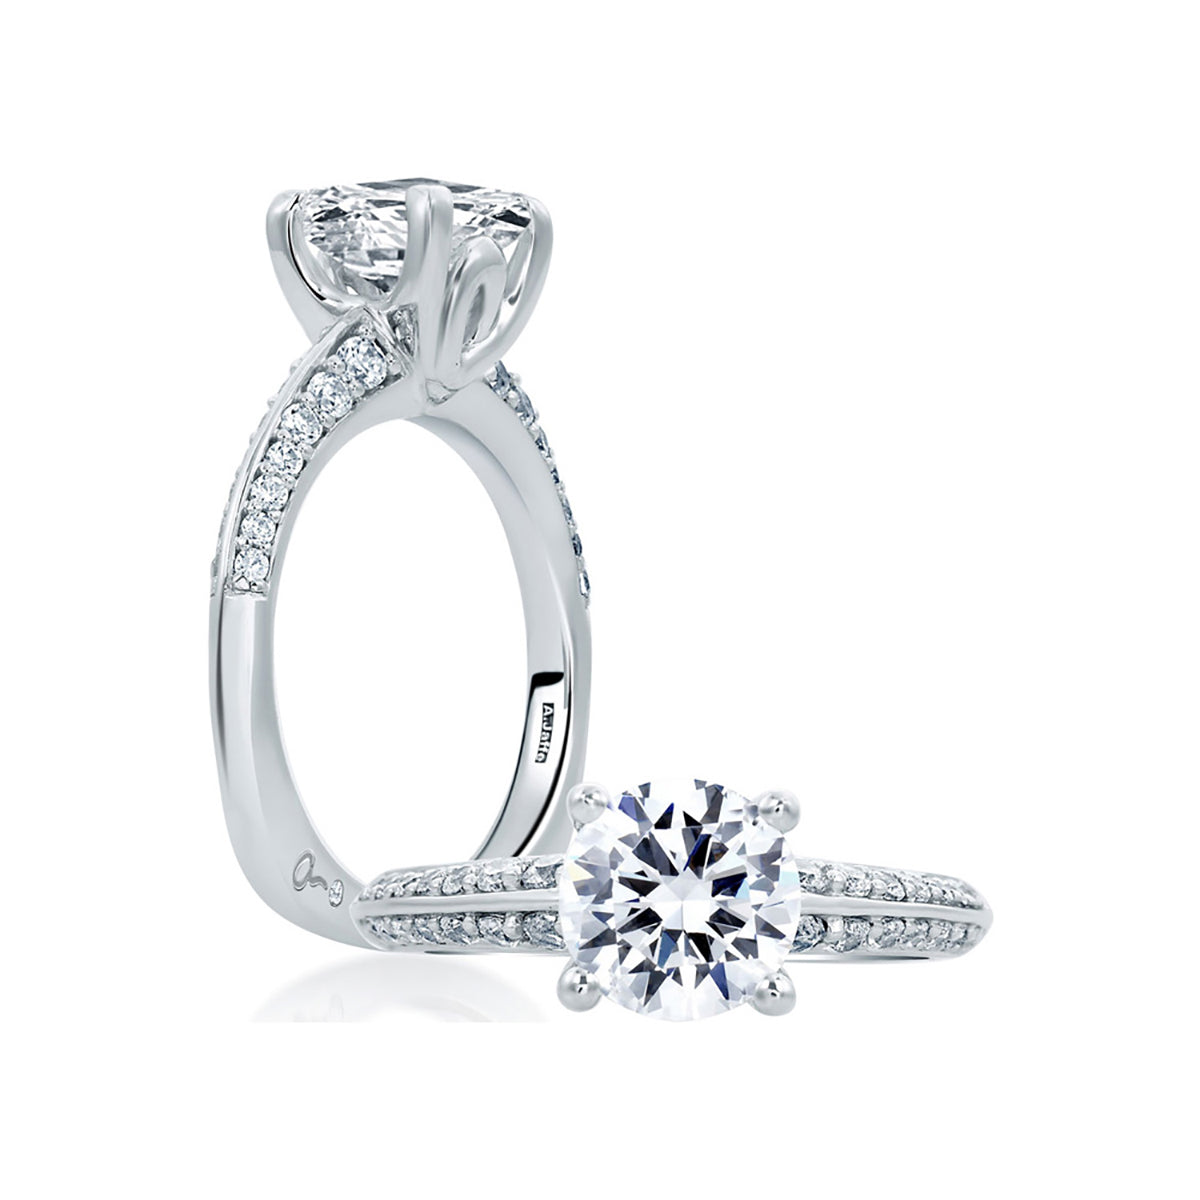 A.Jaffe Classic Round Diamond Center Solitaire Engagement Ring MES669/41